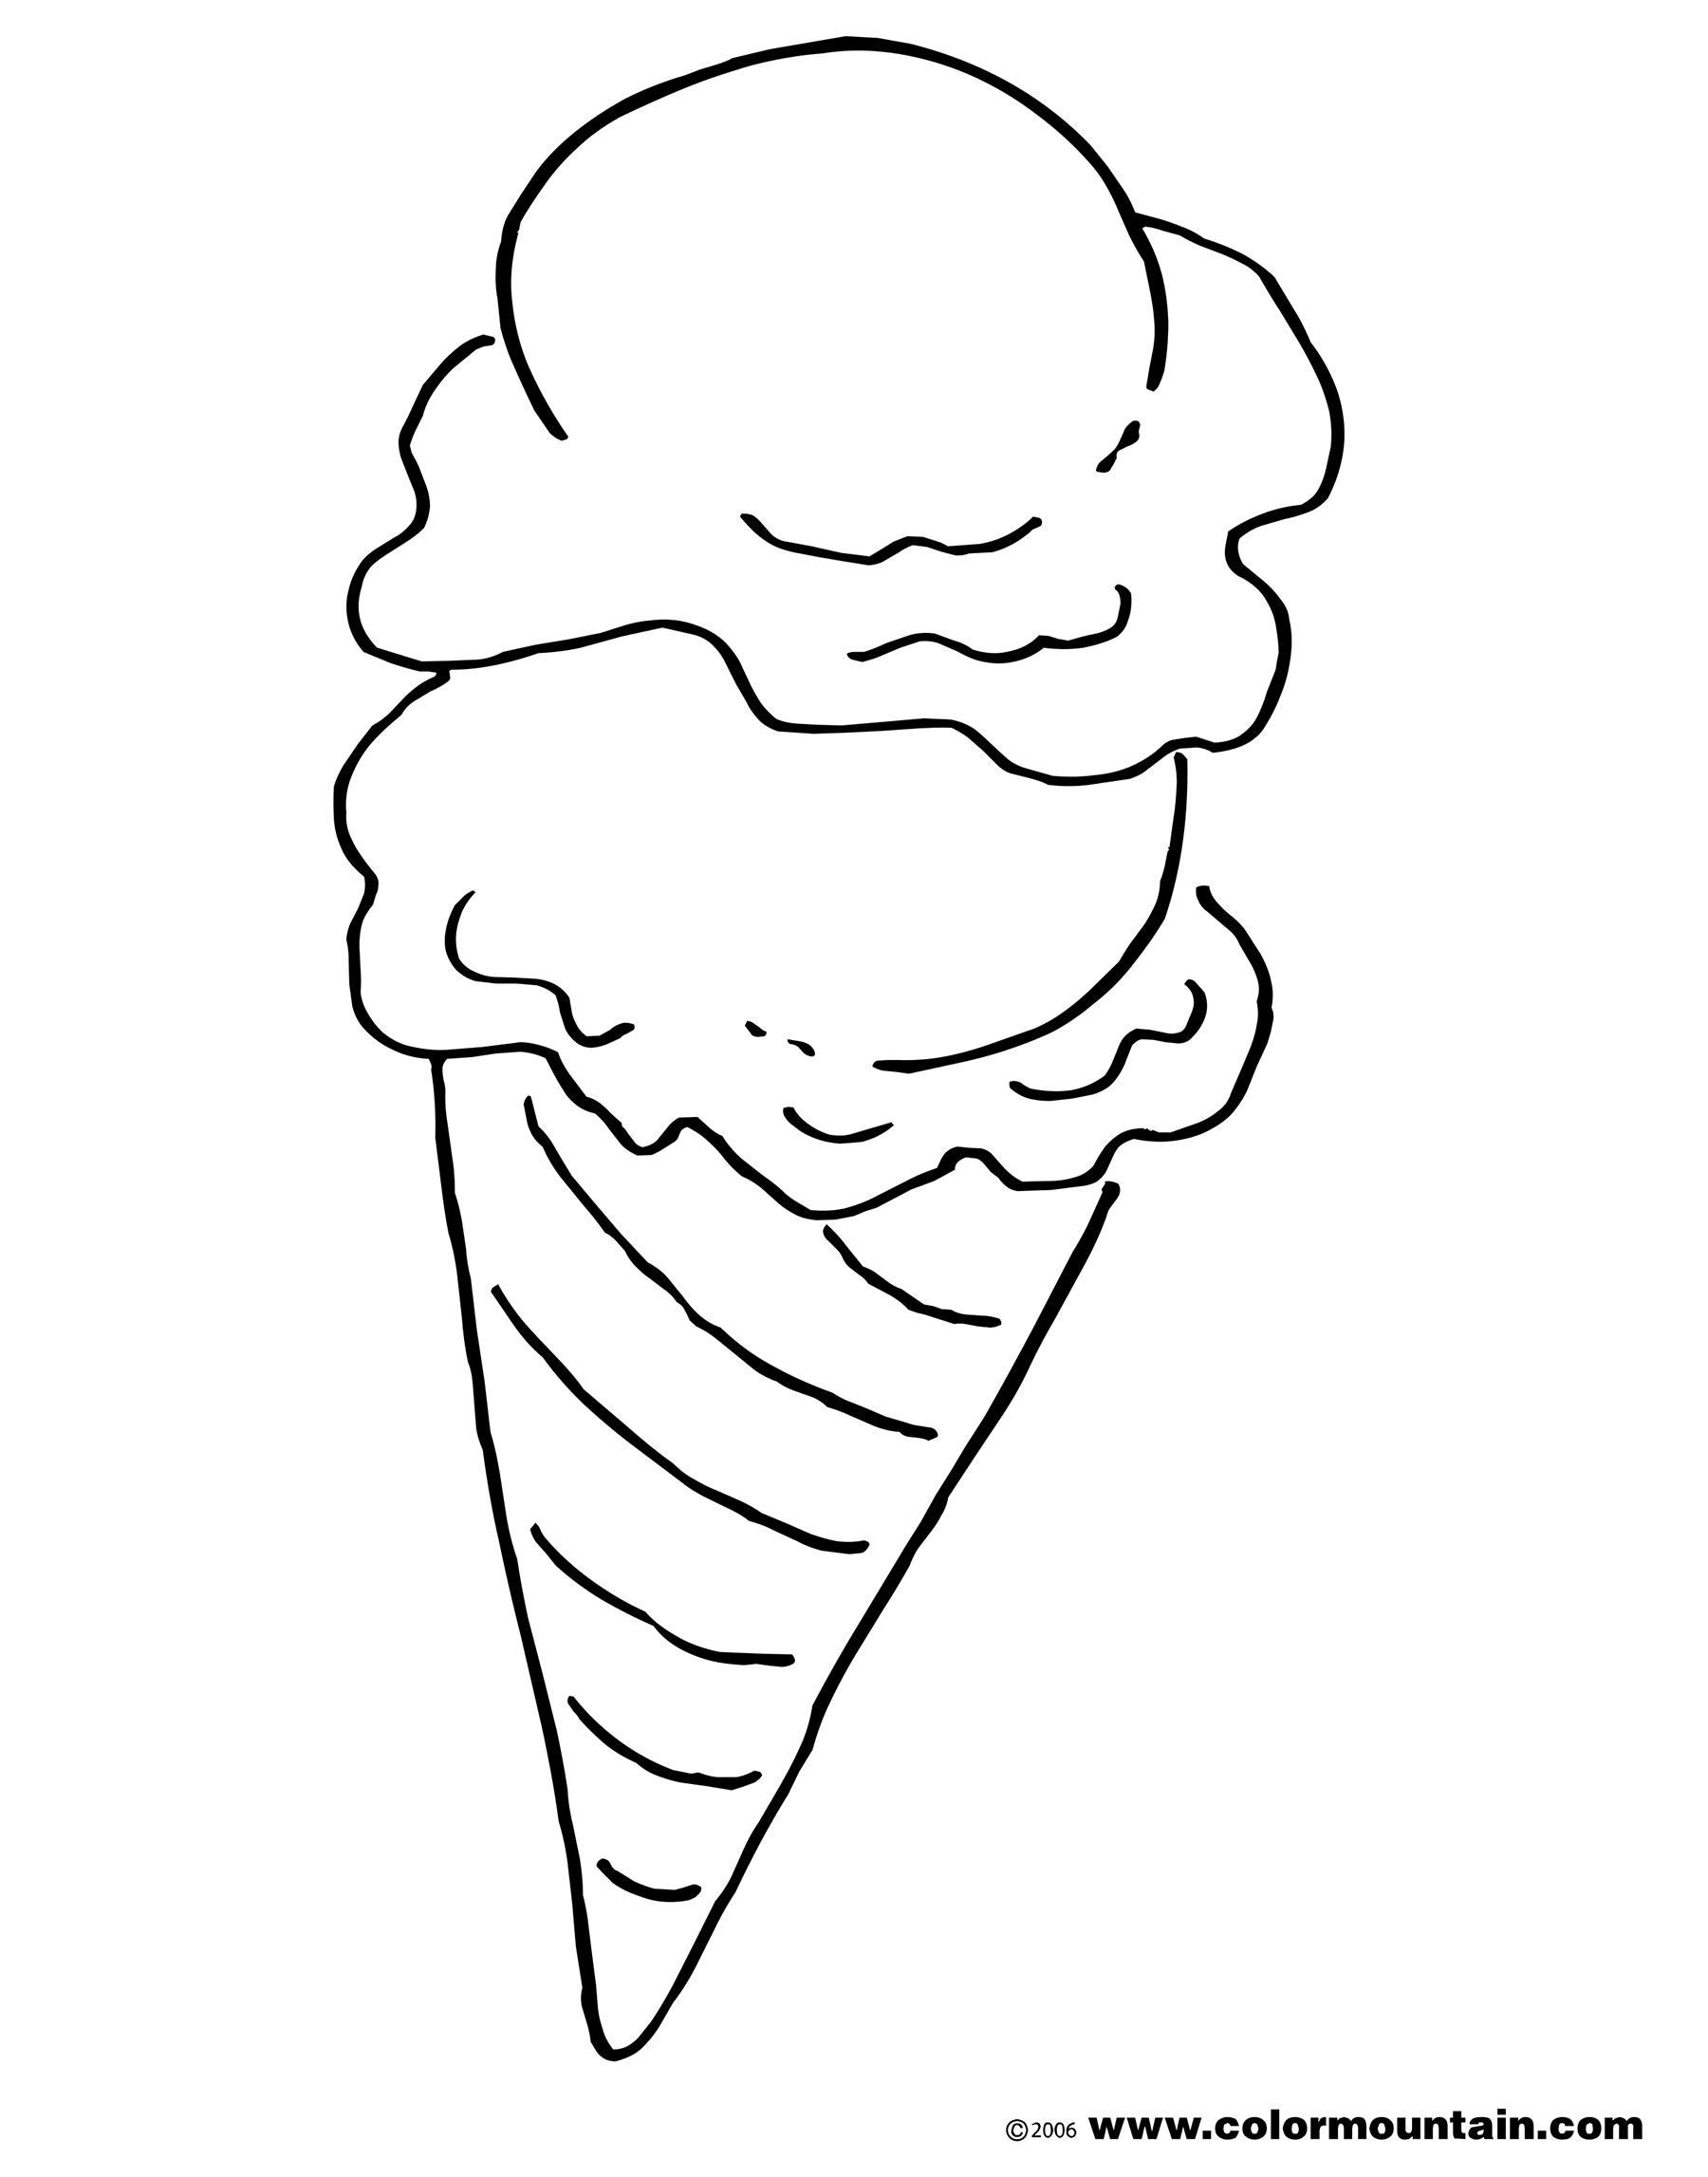 New Ice Cream Colouring Pages Coloring Coloringpages Coloringpagesforkids Coloringpagesforadult Ice Cream Coloring Pages Coloring Pages Free Coloring Pages